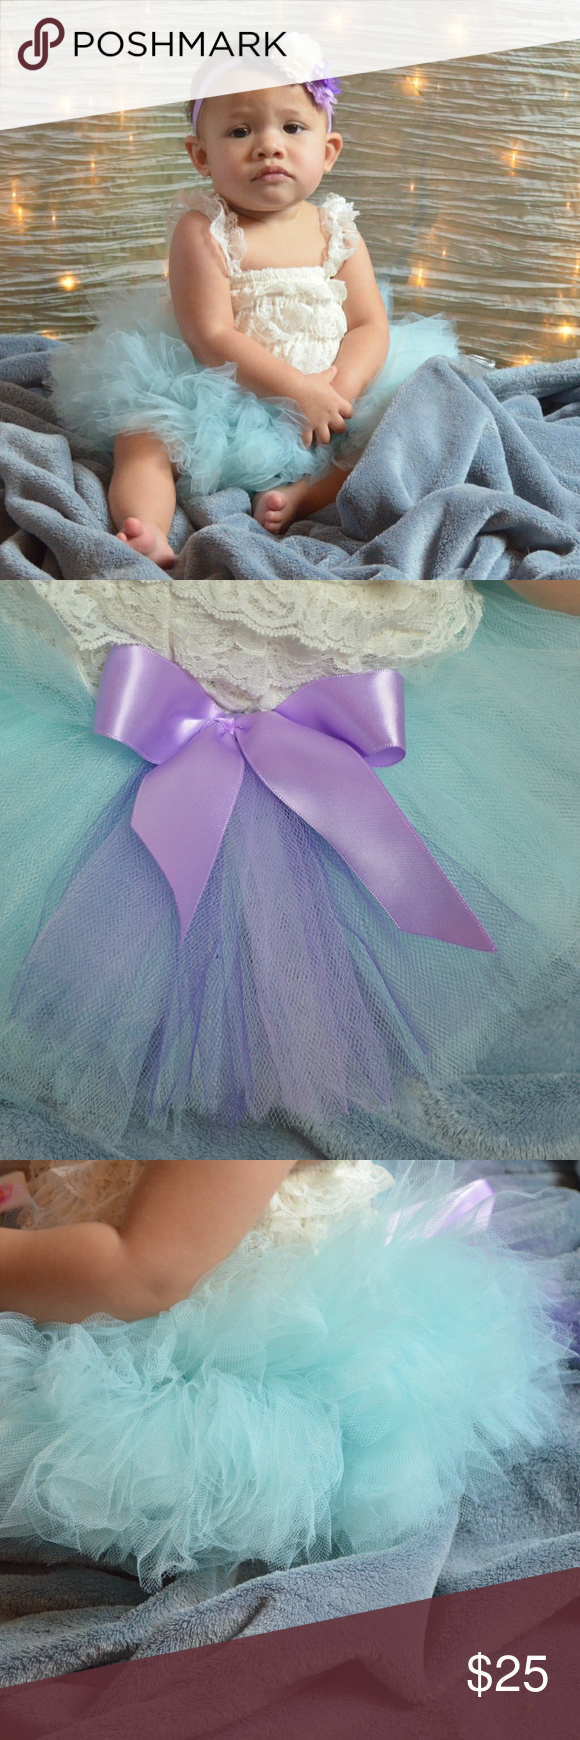 Get this catching skirt for your best girl! Light Blue